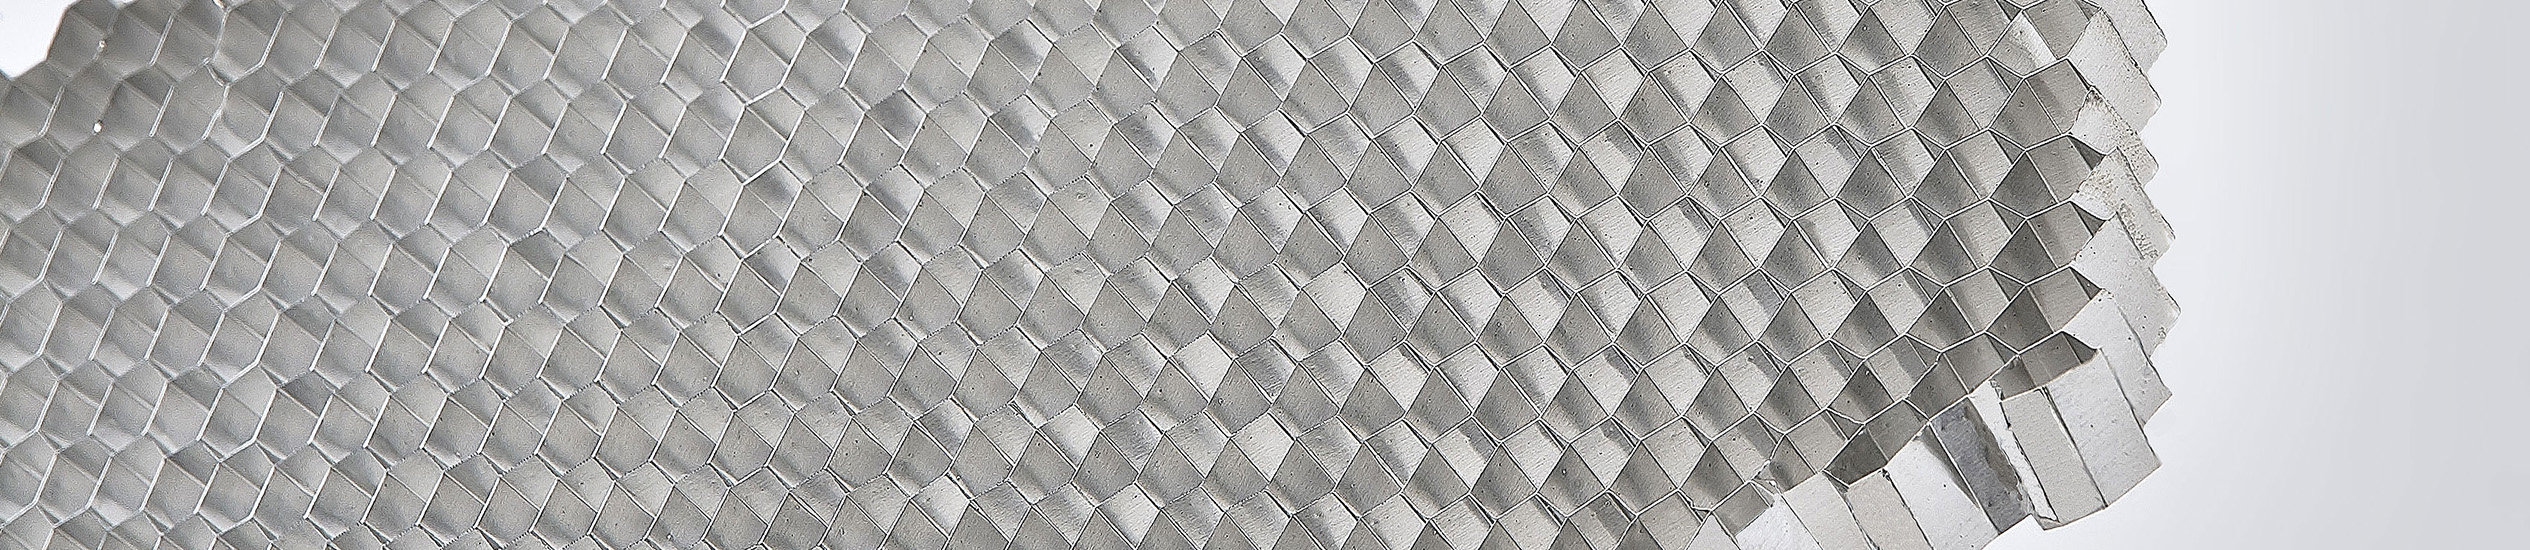 CEL offers a wide range of core materials: aluminium honeycomb, thermoplastics, aramid paper and foams. Their combination offers numerous advantages